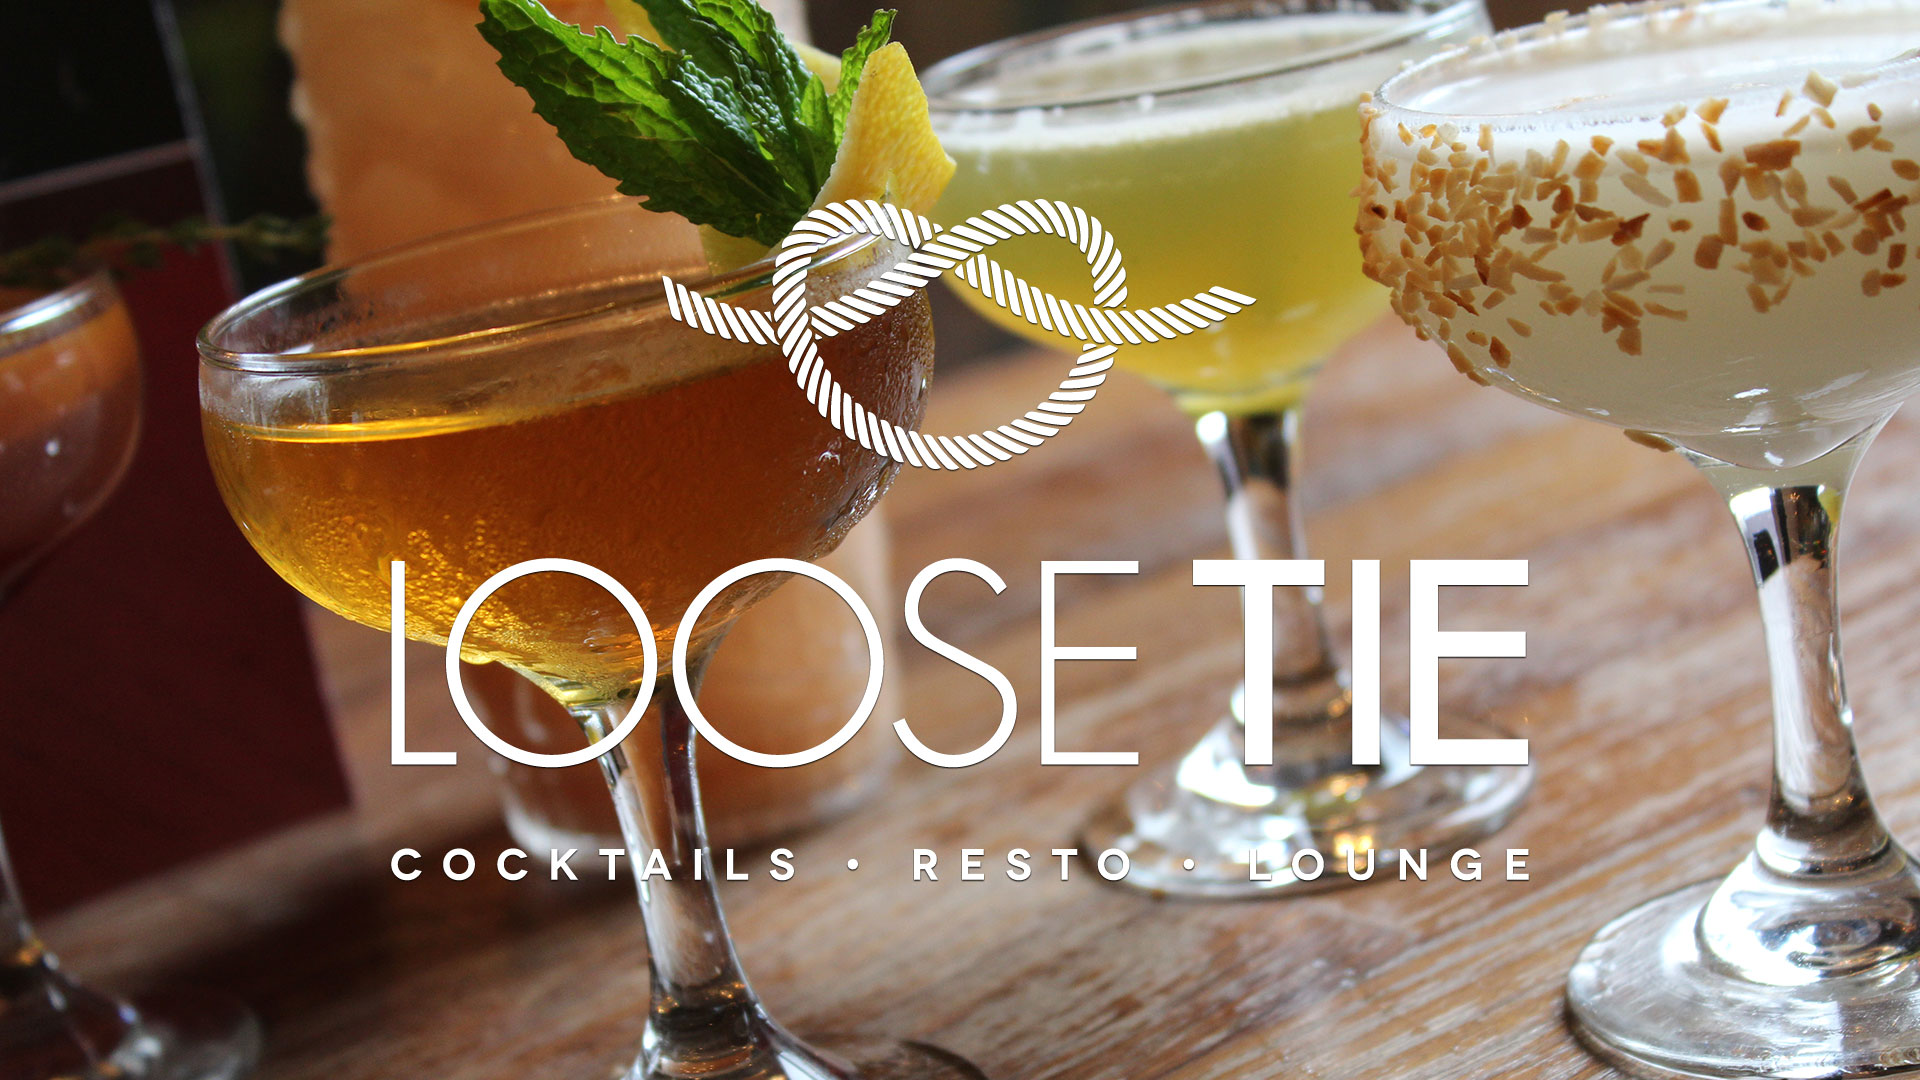 Loose Tie Signature Cocktails and Small Plates